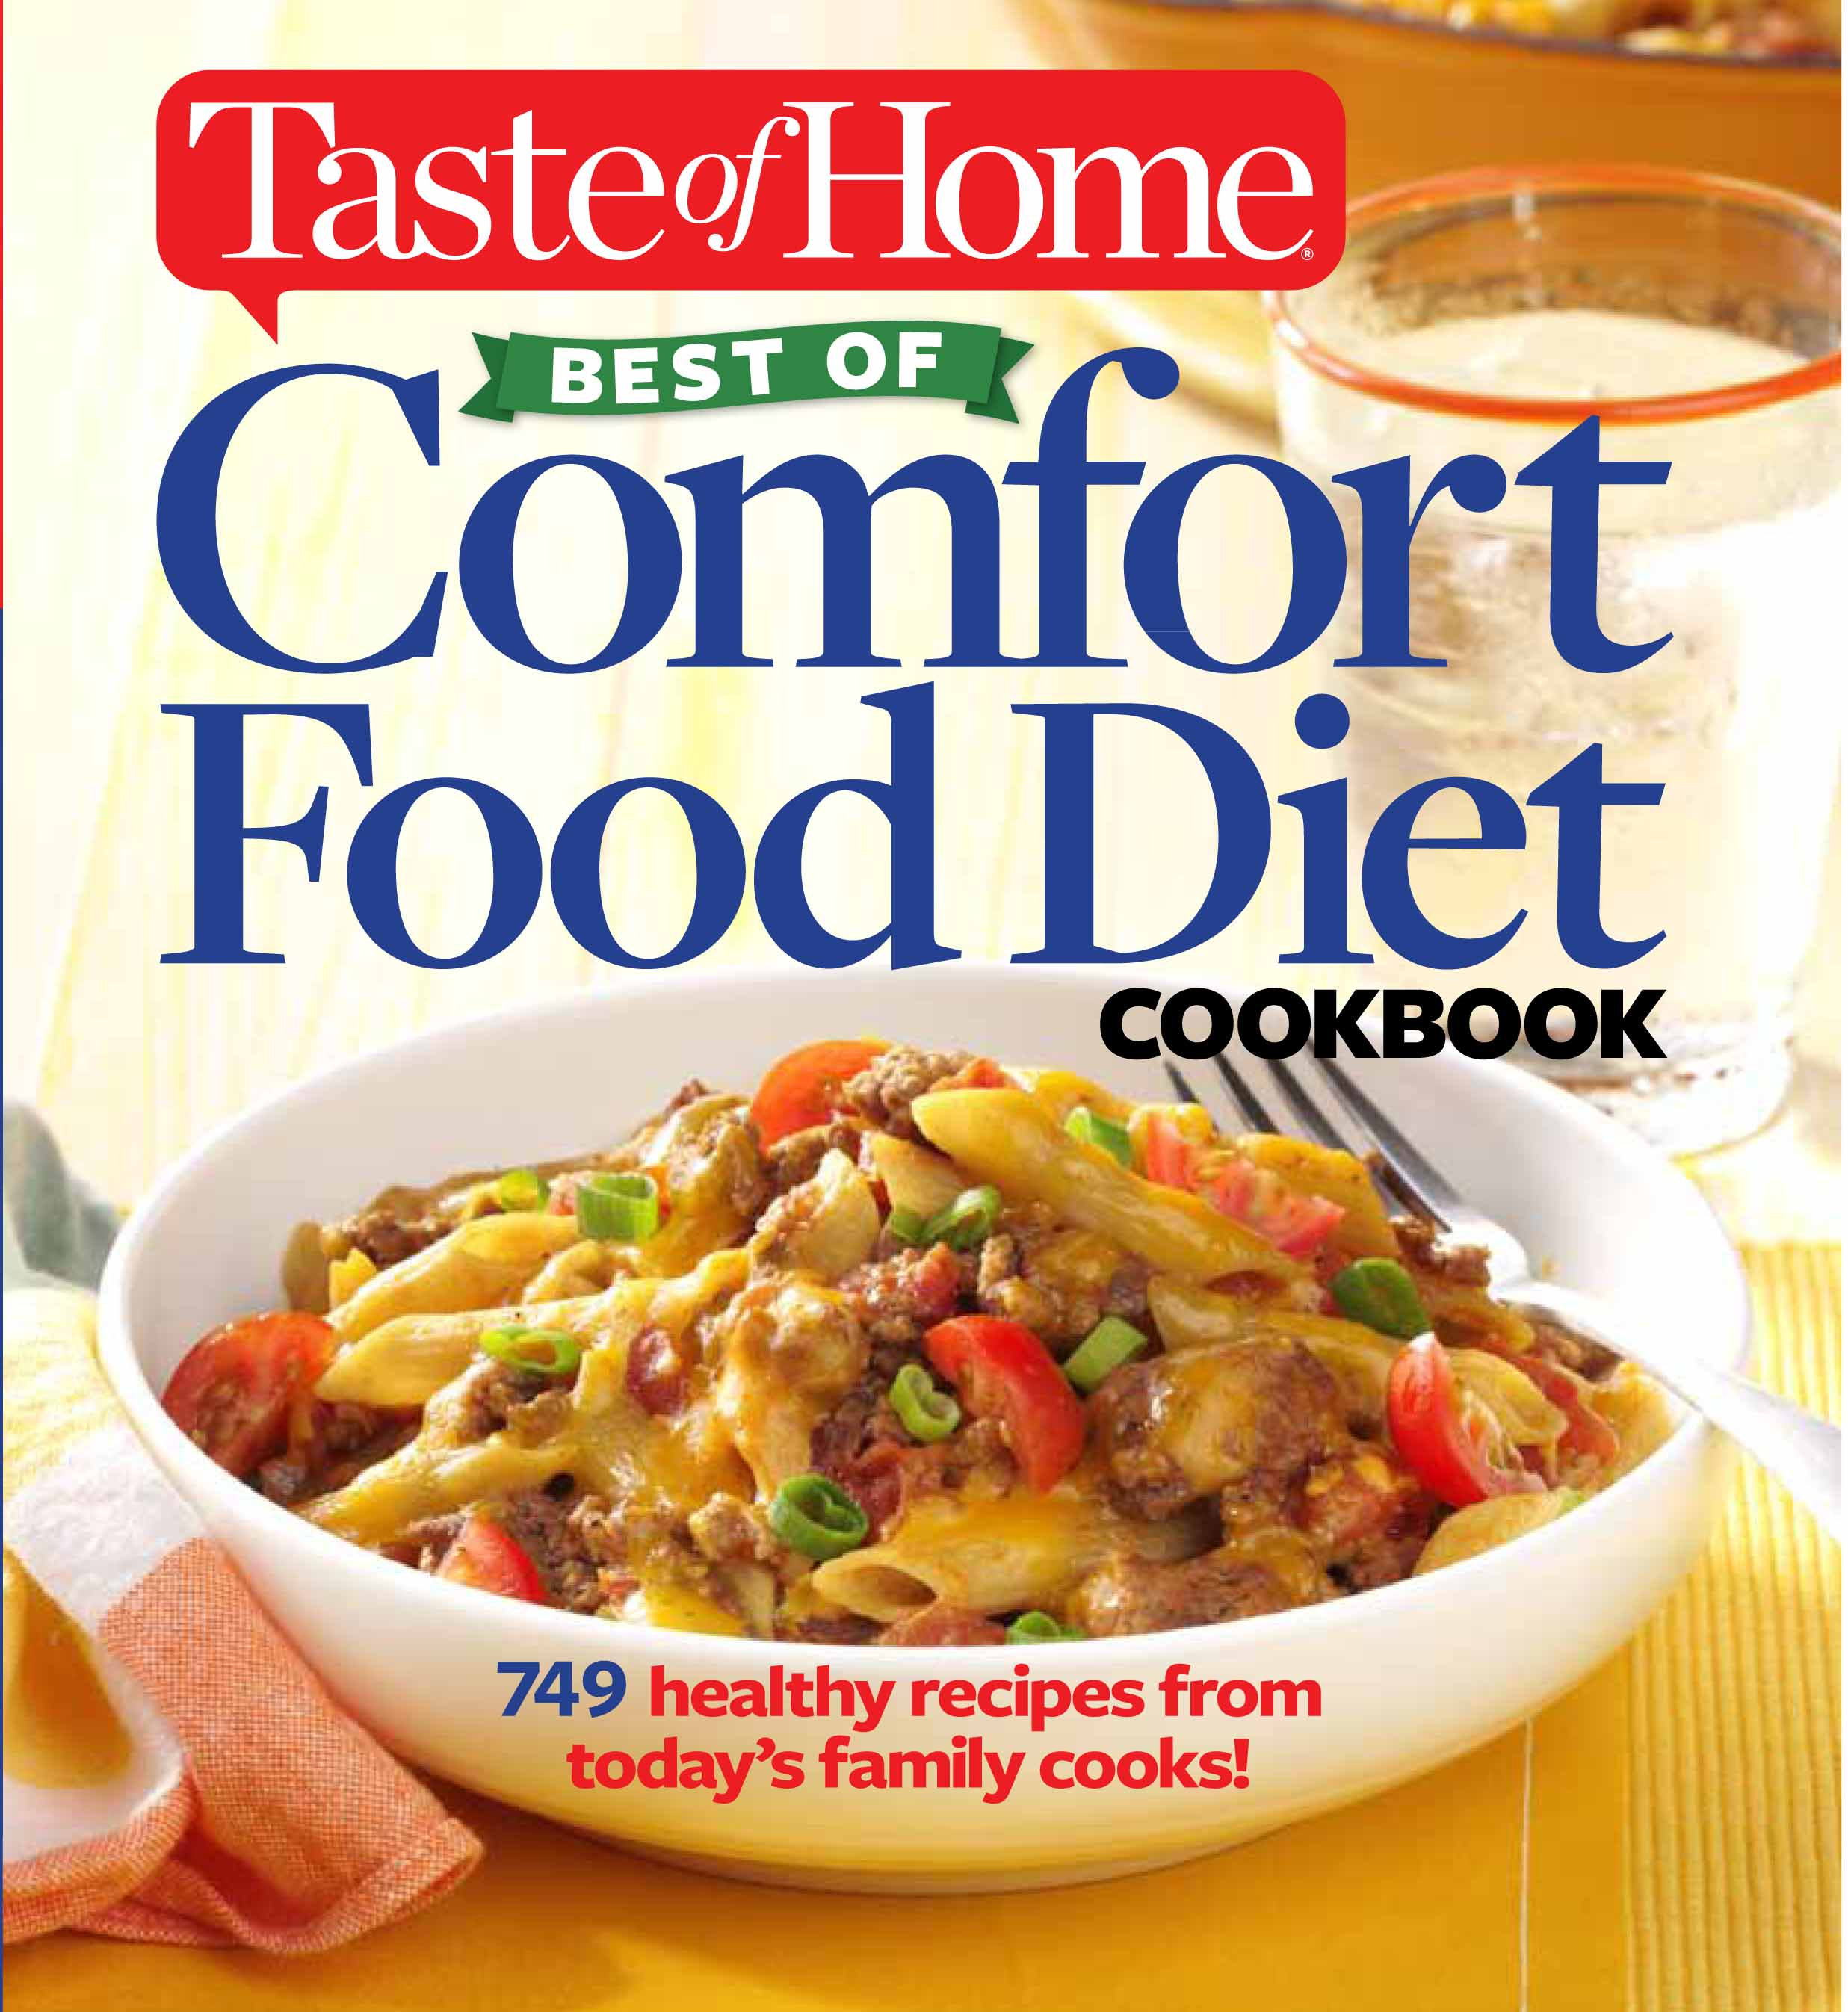 Taste of home best of comfort food diet cookbook book by taste of lose weight with 749 recipes from todays family cooks taste of home best of comfort food diet cookbook forumfinder Gallery